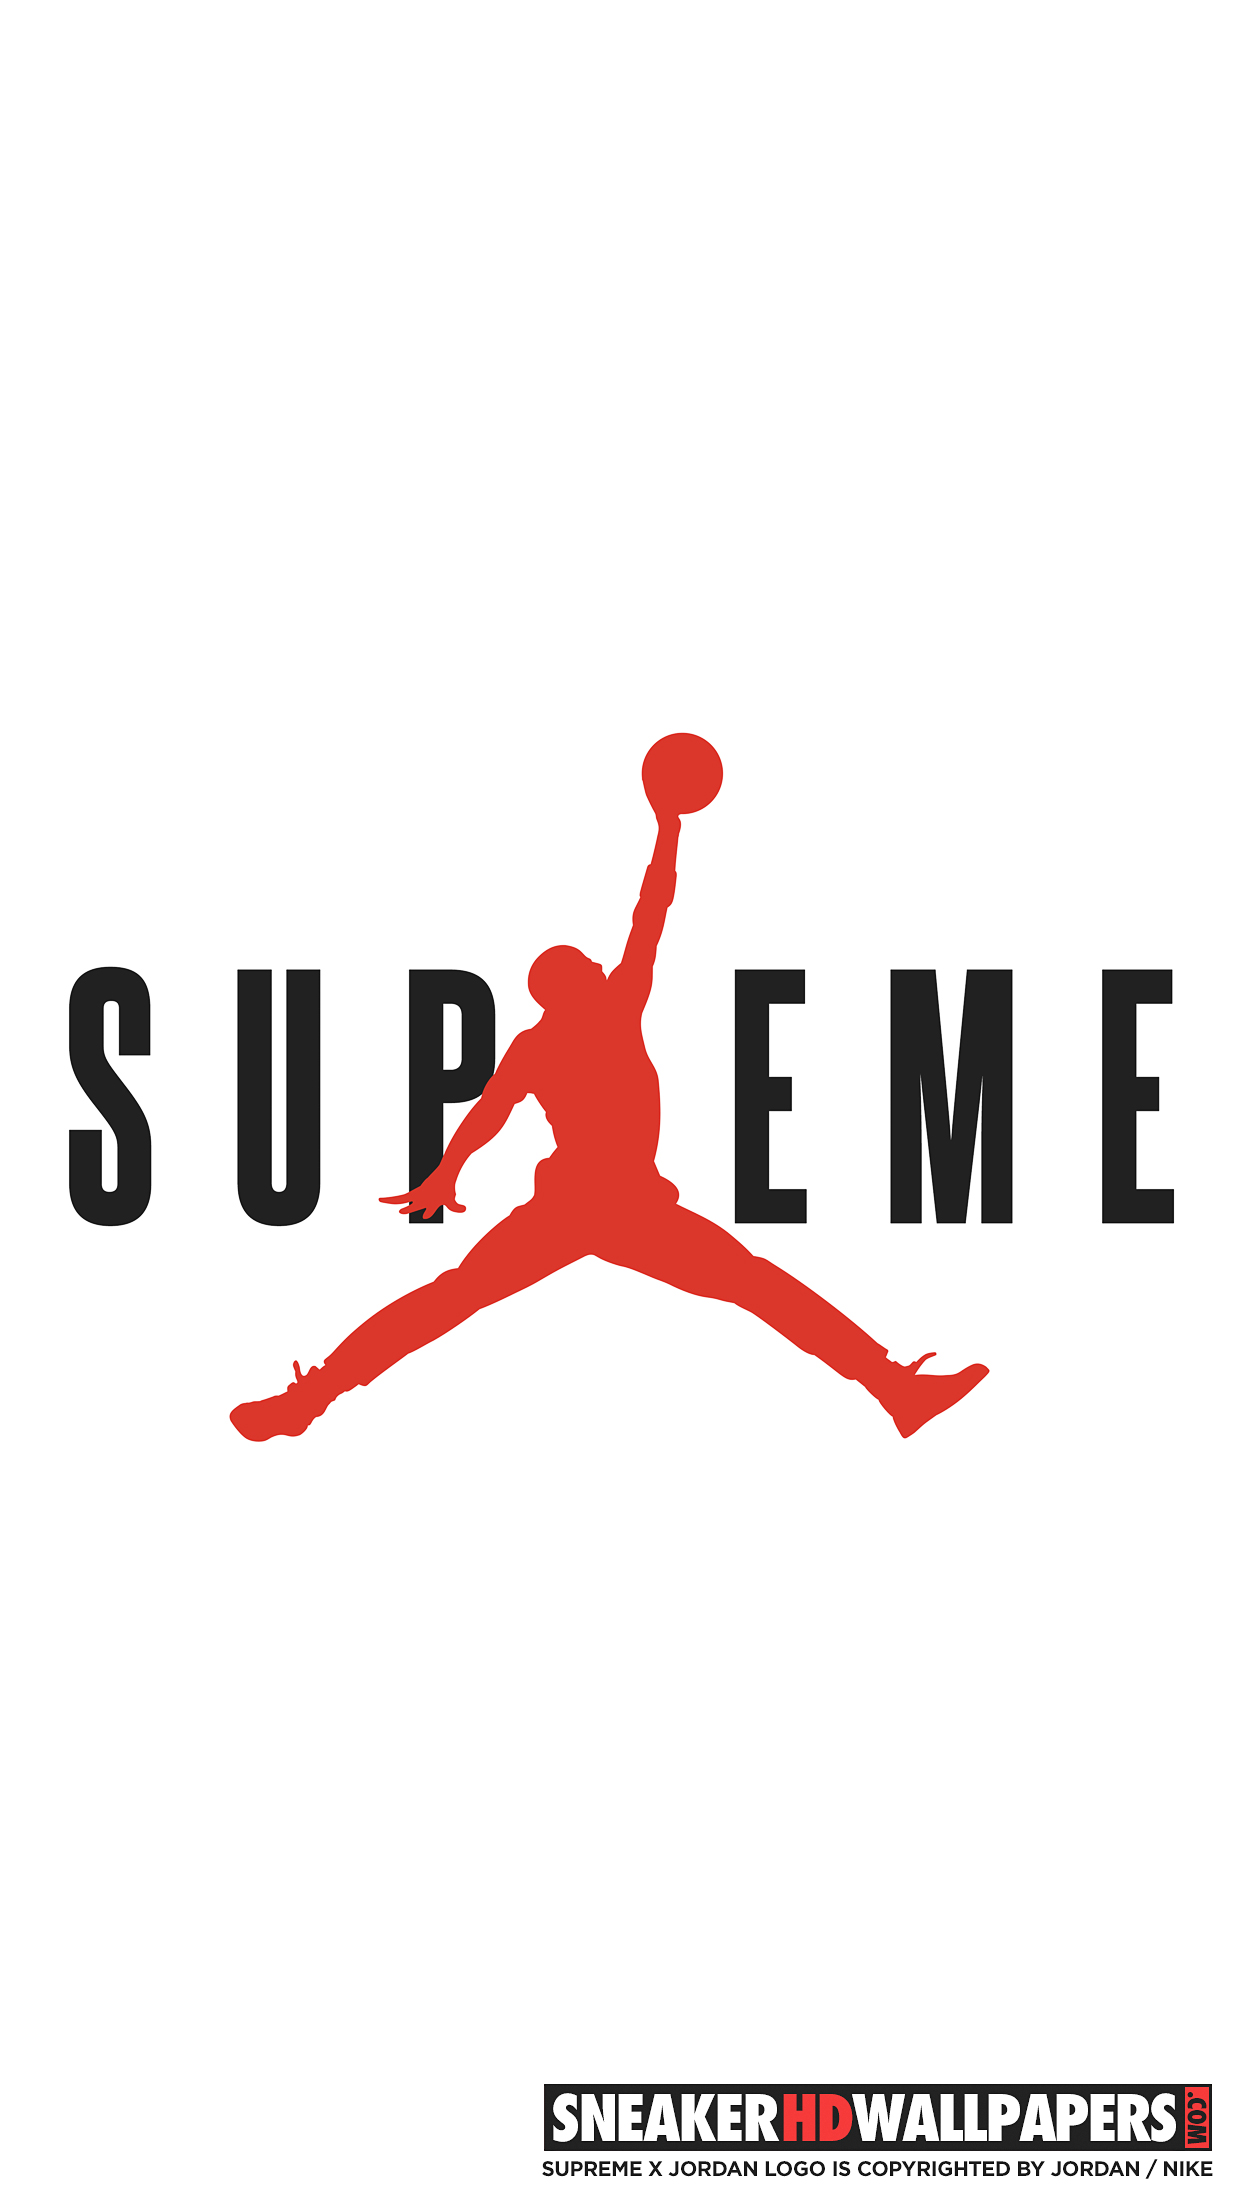 Supreme Jordan Logo Sticker 4 in 2019 Stickers Decals Labels 1242x2208